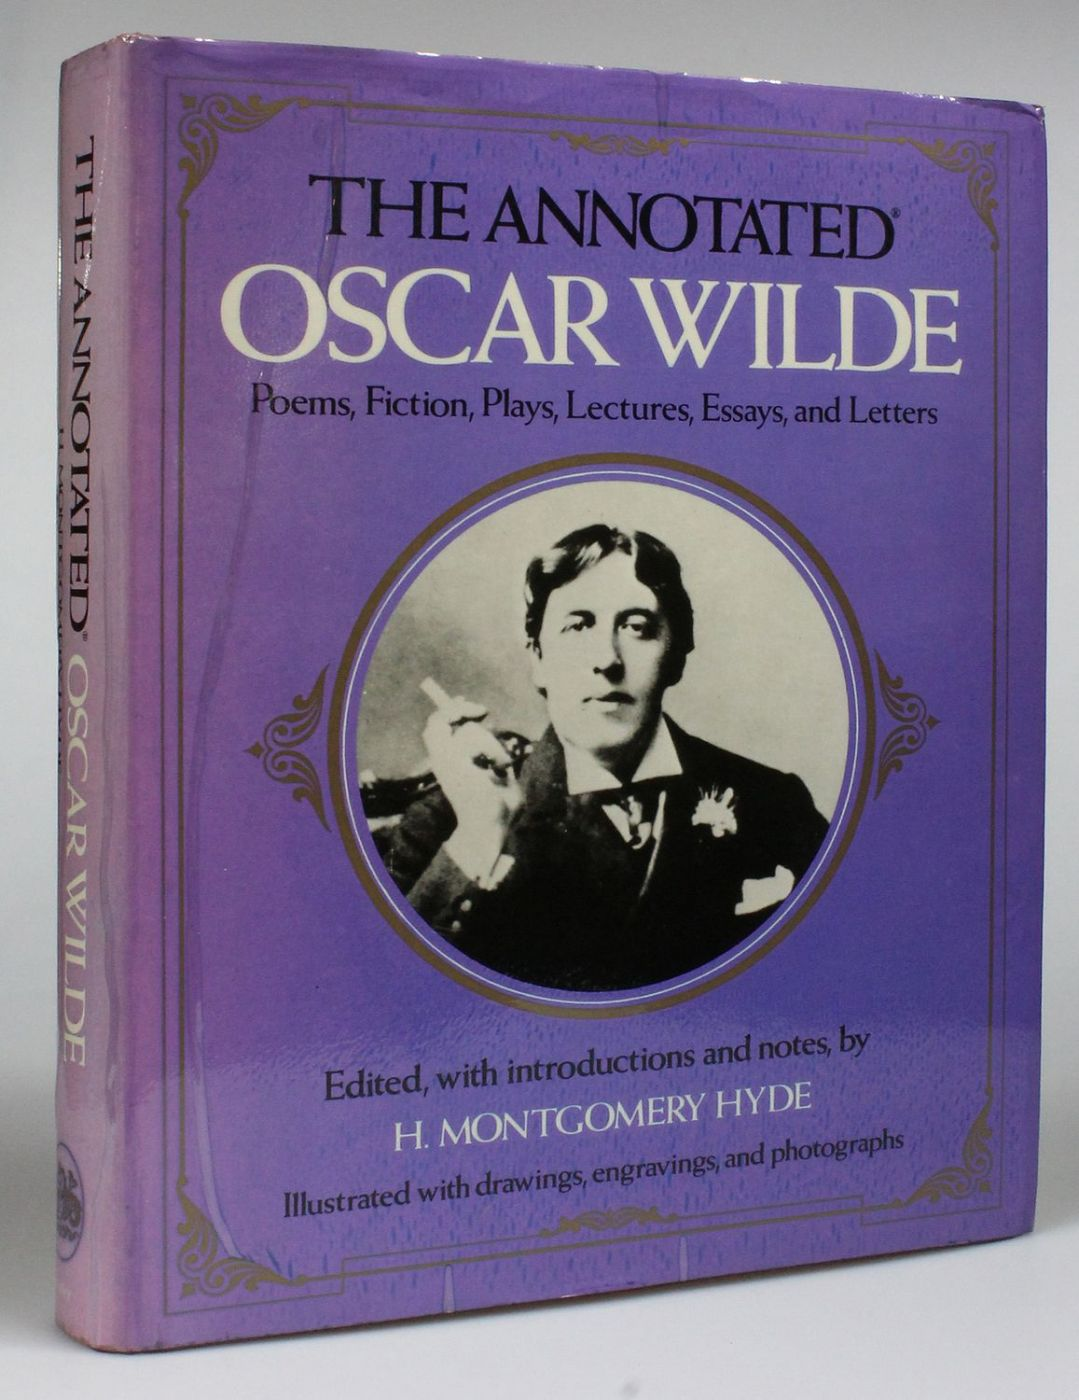 oscar wilde the harlots house essay The complete works of oscar wilde a unique one-volume anthology which includes all of wilde's stories, plays, and poems it also features a large portion of his essays and letters and an introduction by wilde's son, vyvyan holland.